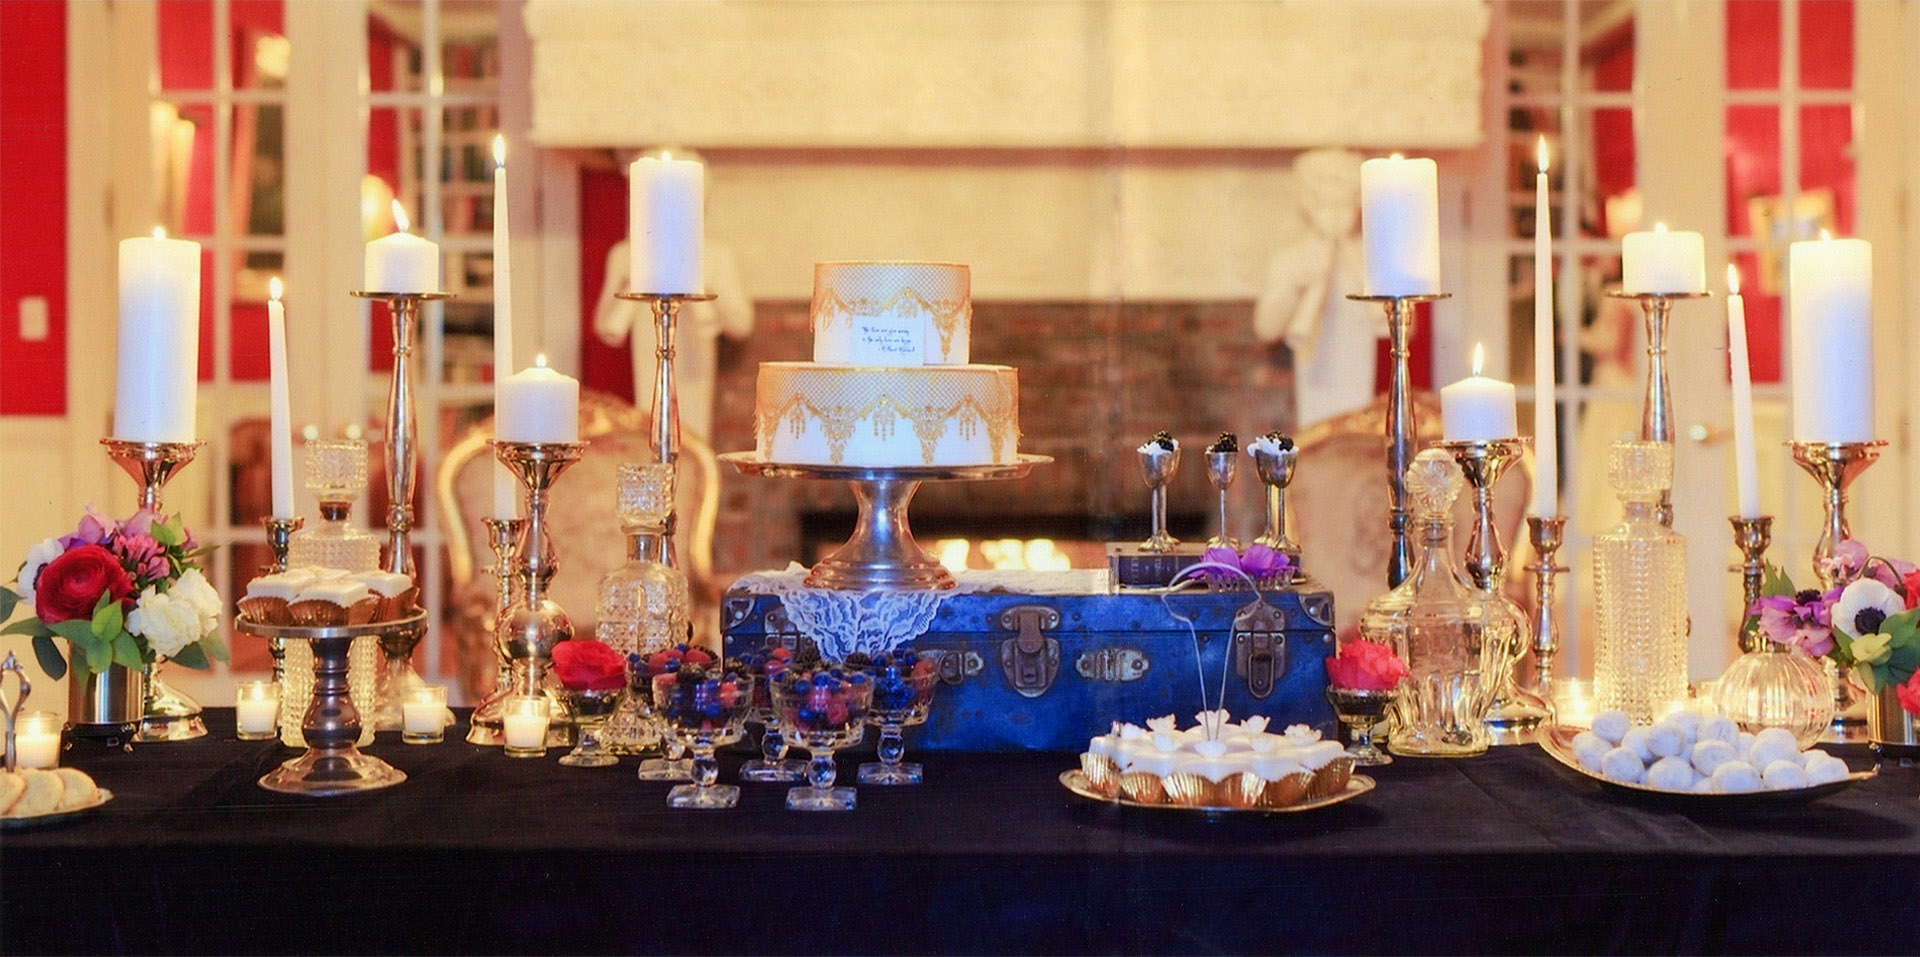 Petit cakes and petit fours on dessert table for a traditional French themed wedding event